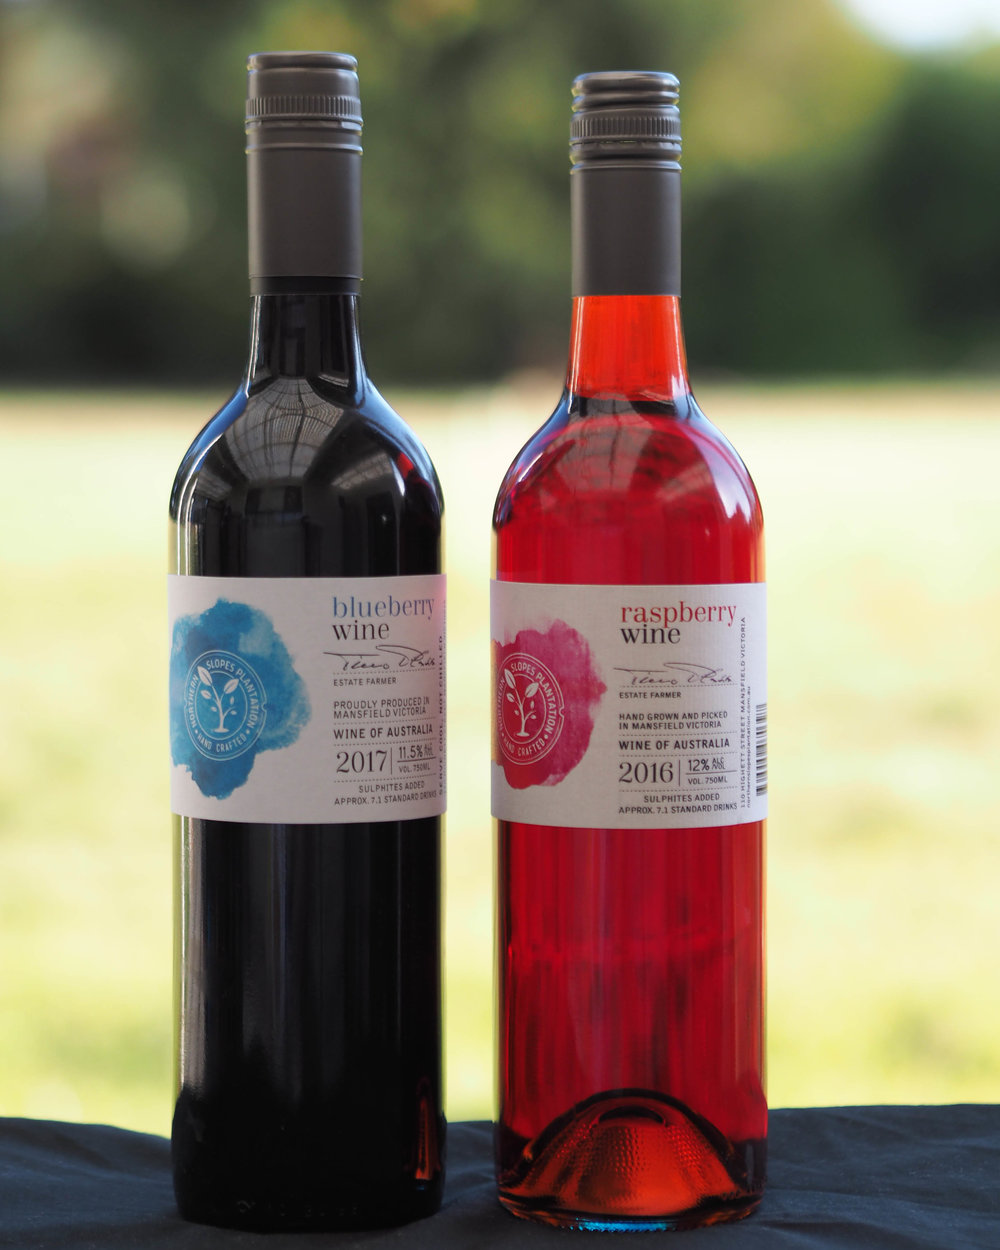 RASPBERRY AND BLUEBERRY WINE GIFT PACK SPECIAL! - $50 per twin pack